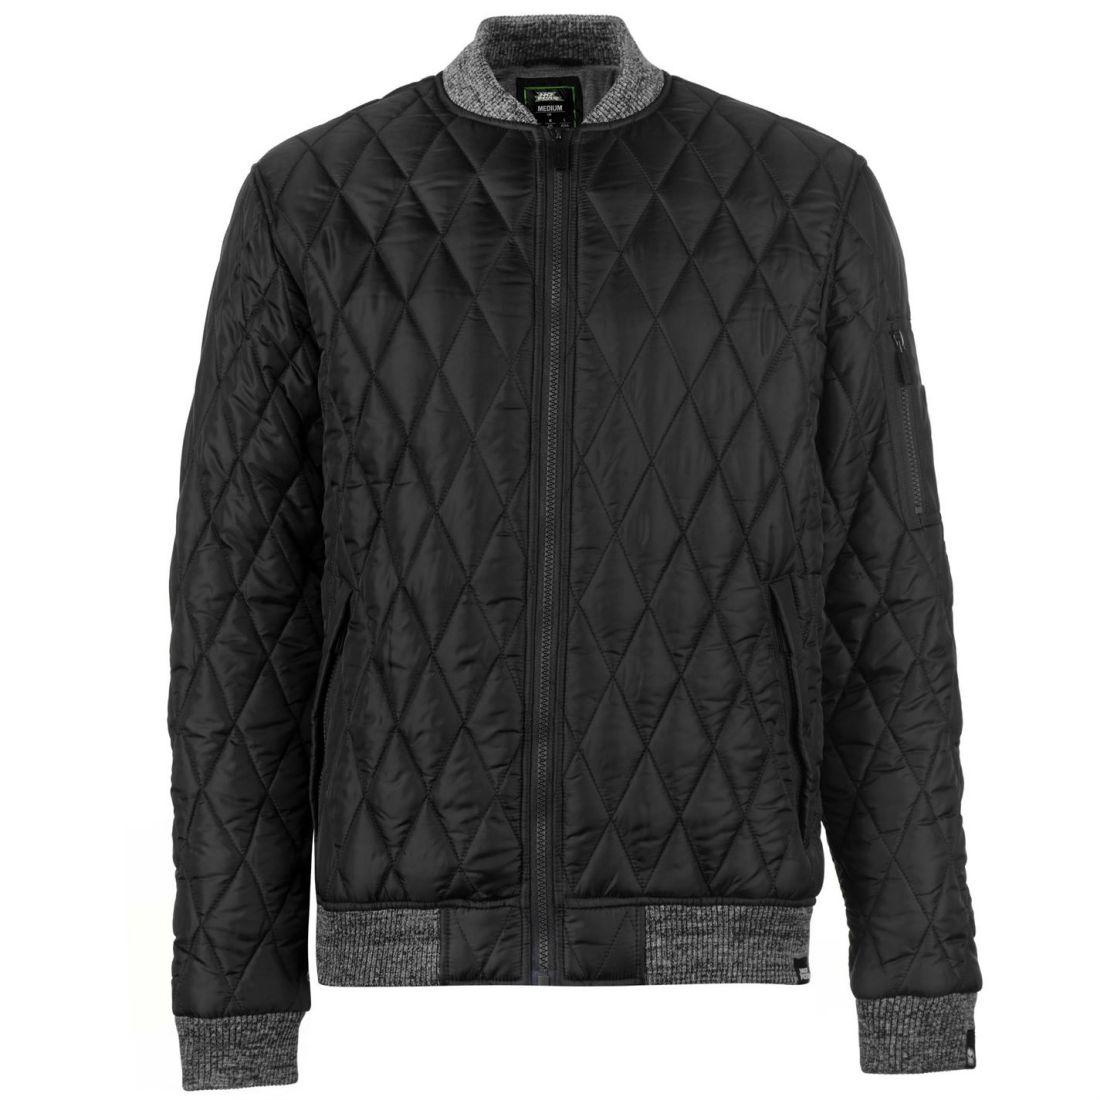 No-Fear-Quilted-Bomber-Jacket-Mens-Gents-Coat-Top-Full-Length-Sleeve-Zip-Zipped